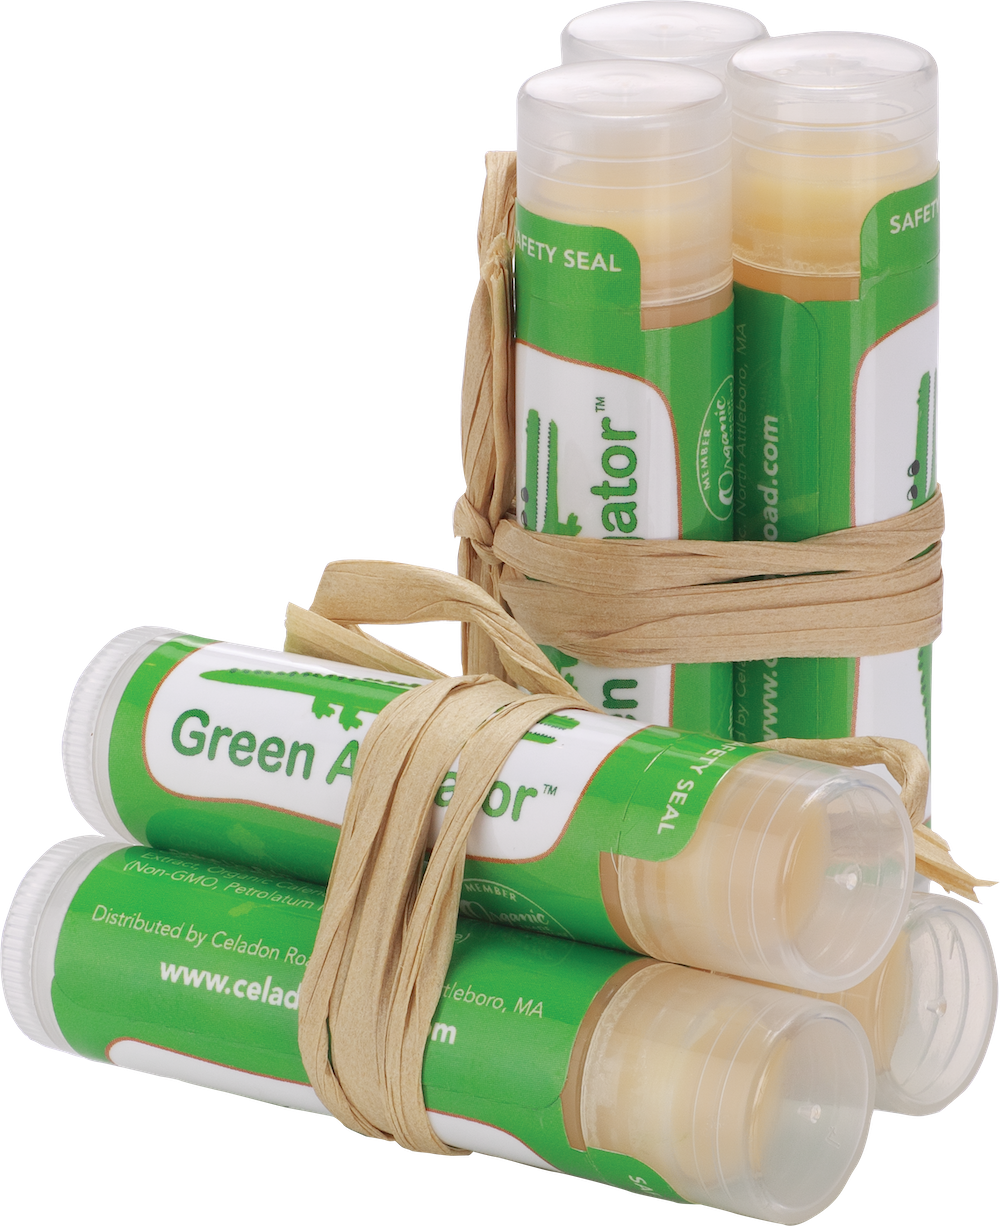 Certified Organic Green Alligator Lip Balm Trio - Strawberry, Cherry, Citrus- Celadon Road- www.celadonroad.com